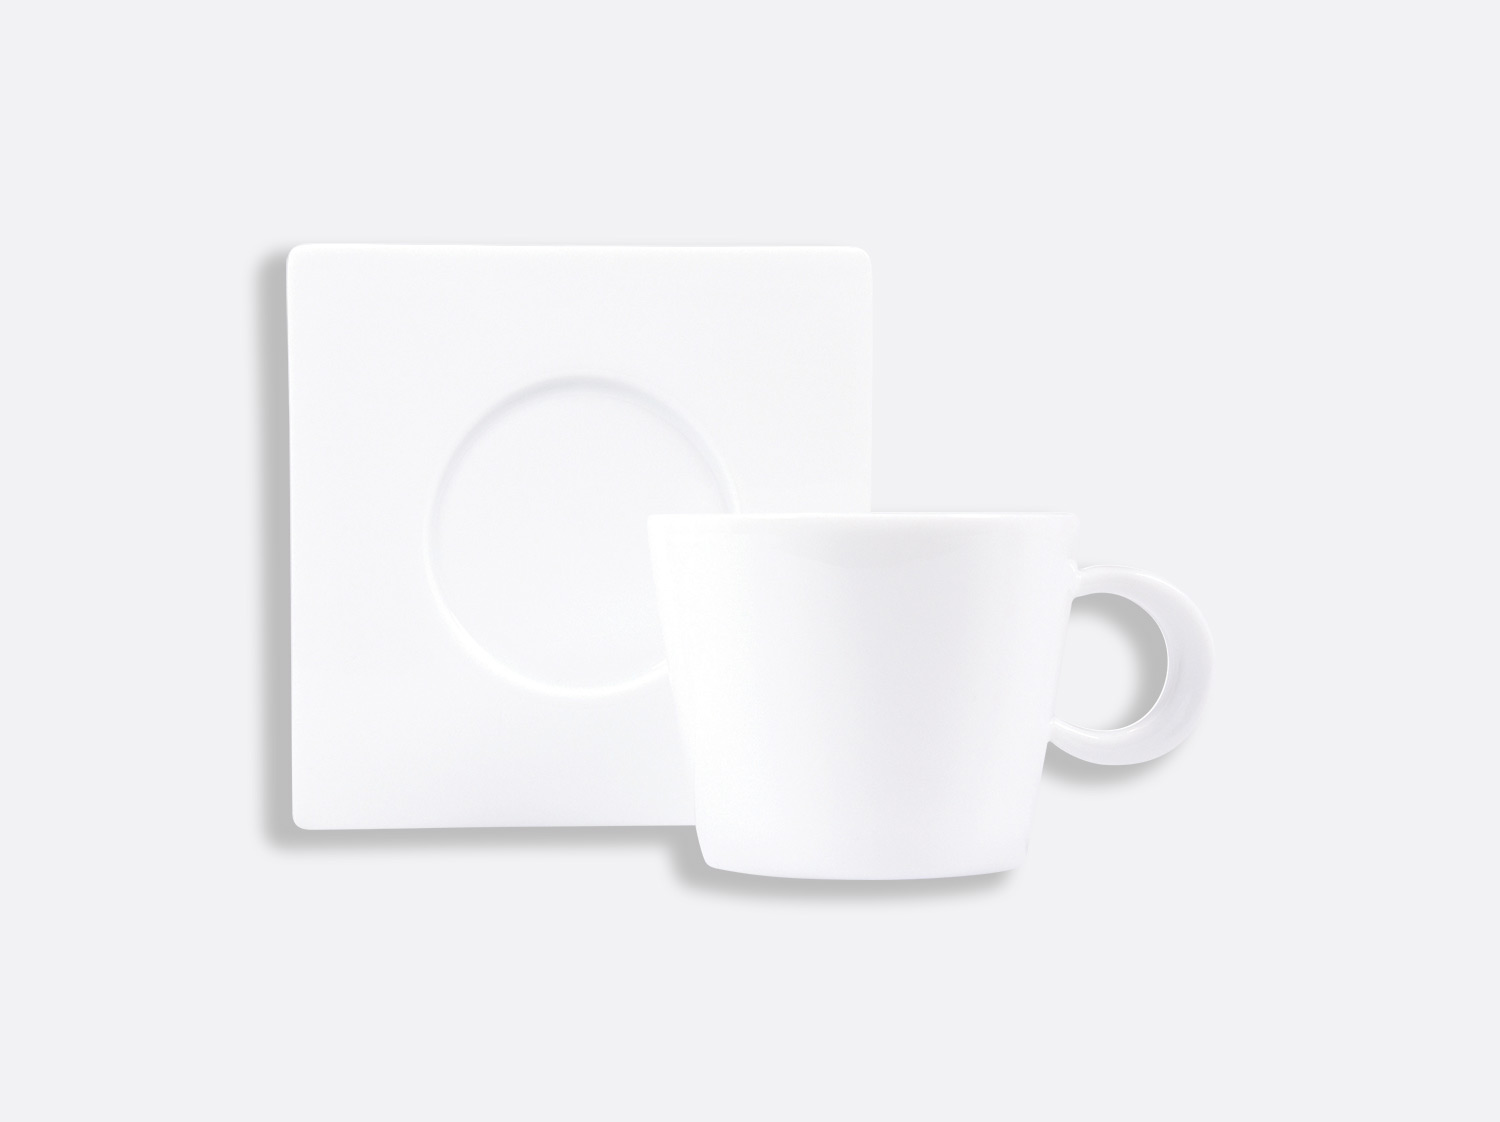 Tasse et soucoupe chocolat / thé Opus 17 cl en porcelaine de la collection OPUS BLANC Bernardaud